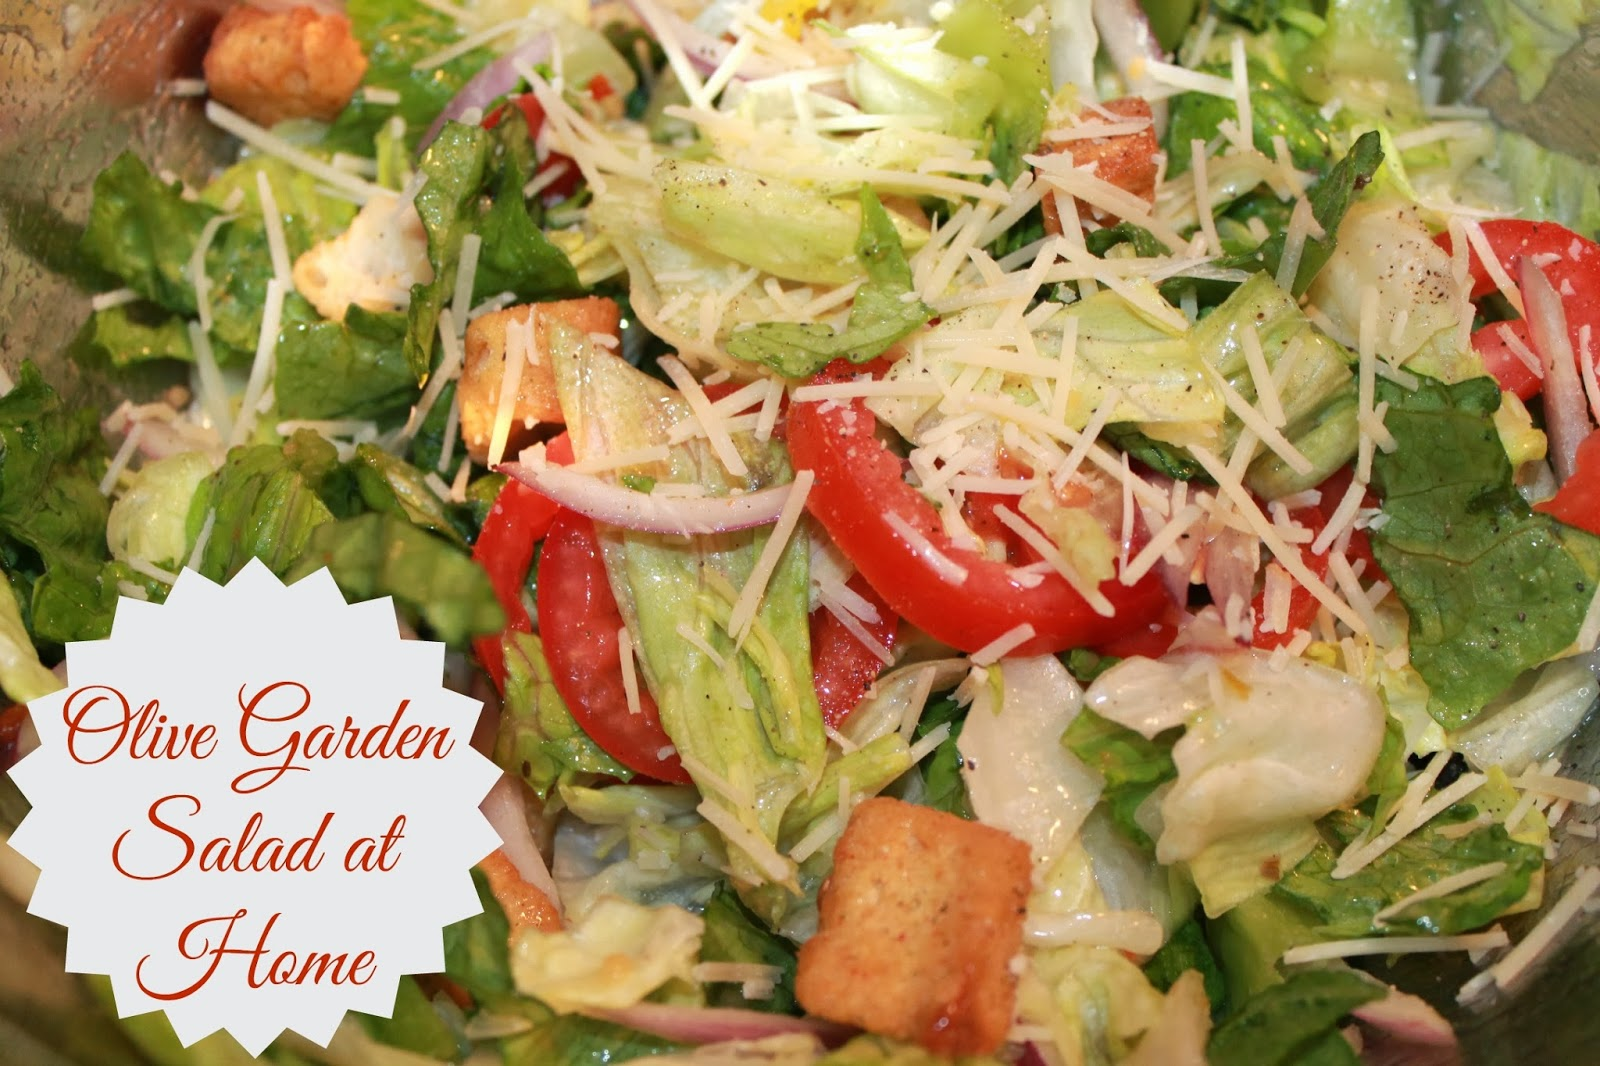 PolkaDotty Place Olive Garden Salad At Home - Olive garden house salad